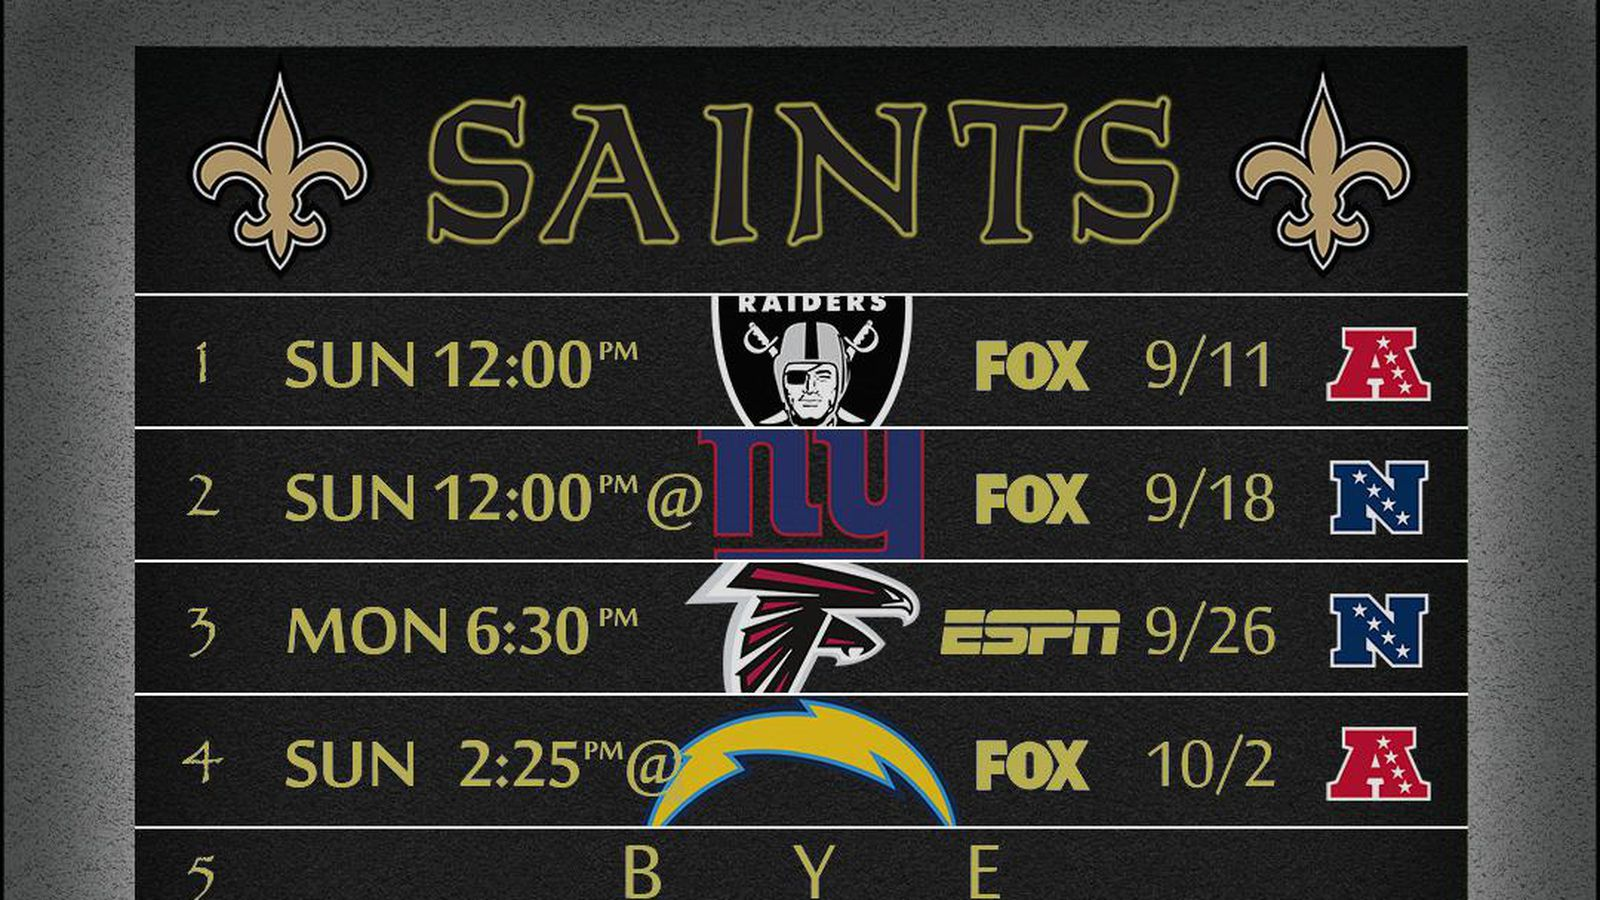 Saints schedule wallpaper - Canal Street Chronicles